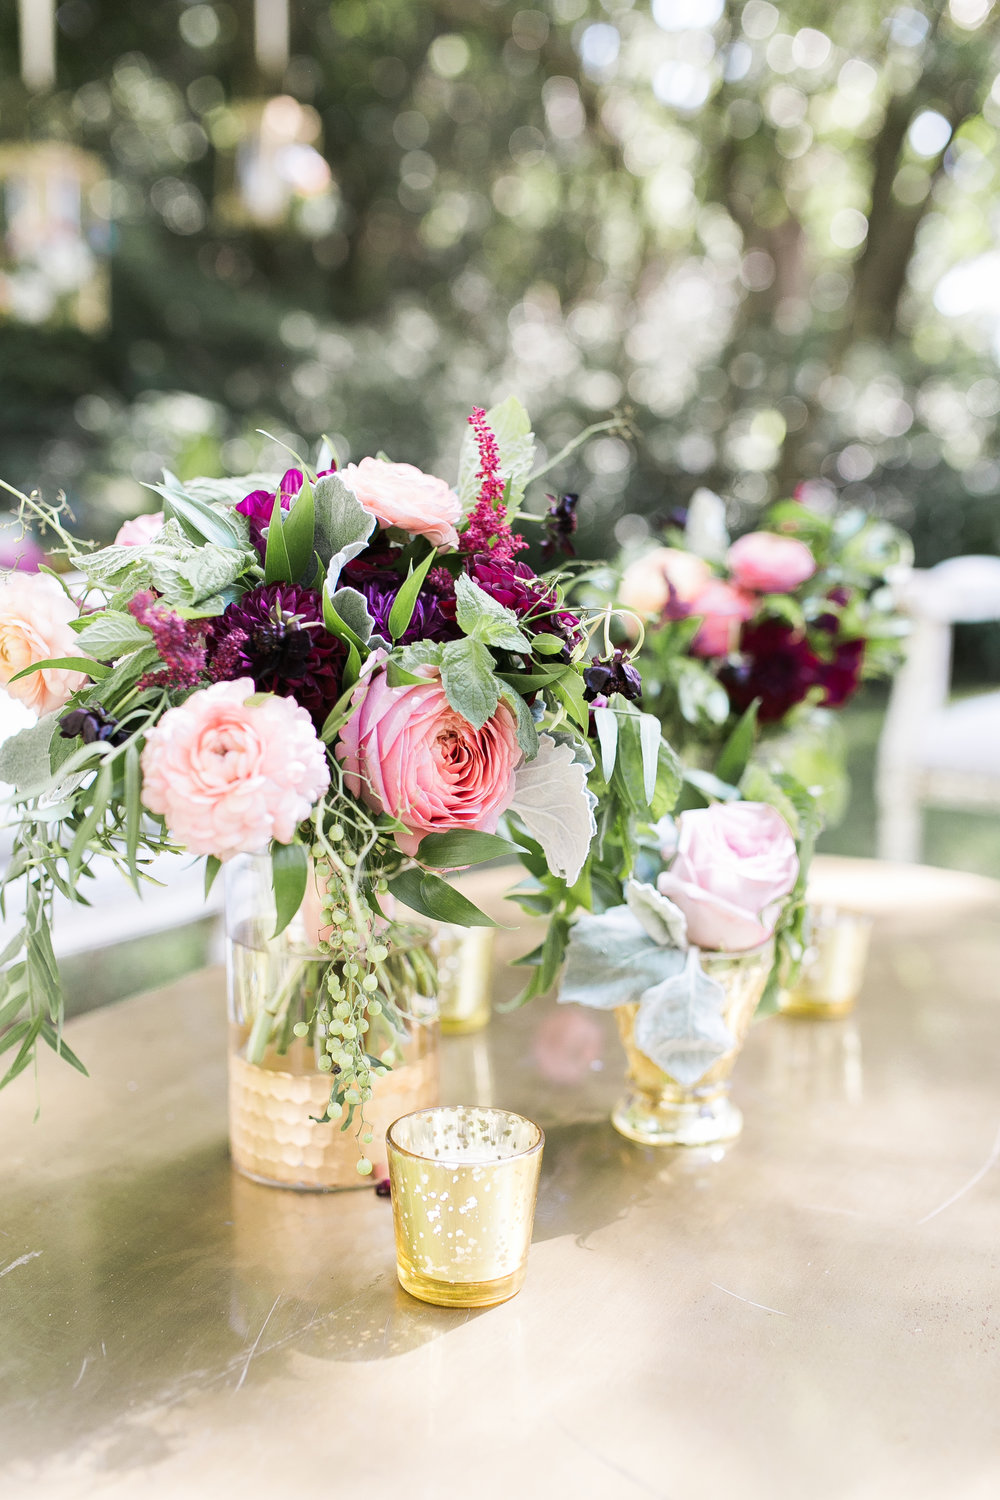 Colorful centerpieces in gold vases by Branch Design Studio at wedding in Charleston, SC Colorful outdoor reception at The Thomas Bennett House wedding in Charleston, SC  //  photographed by Jenna Weddings  Traditional wedding ceremony at Cathedral of St. John the Baptist in Charleston, SC  //  A Lowcountry Wedding Magazine & Blog